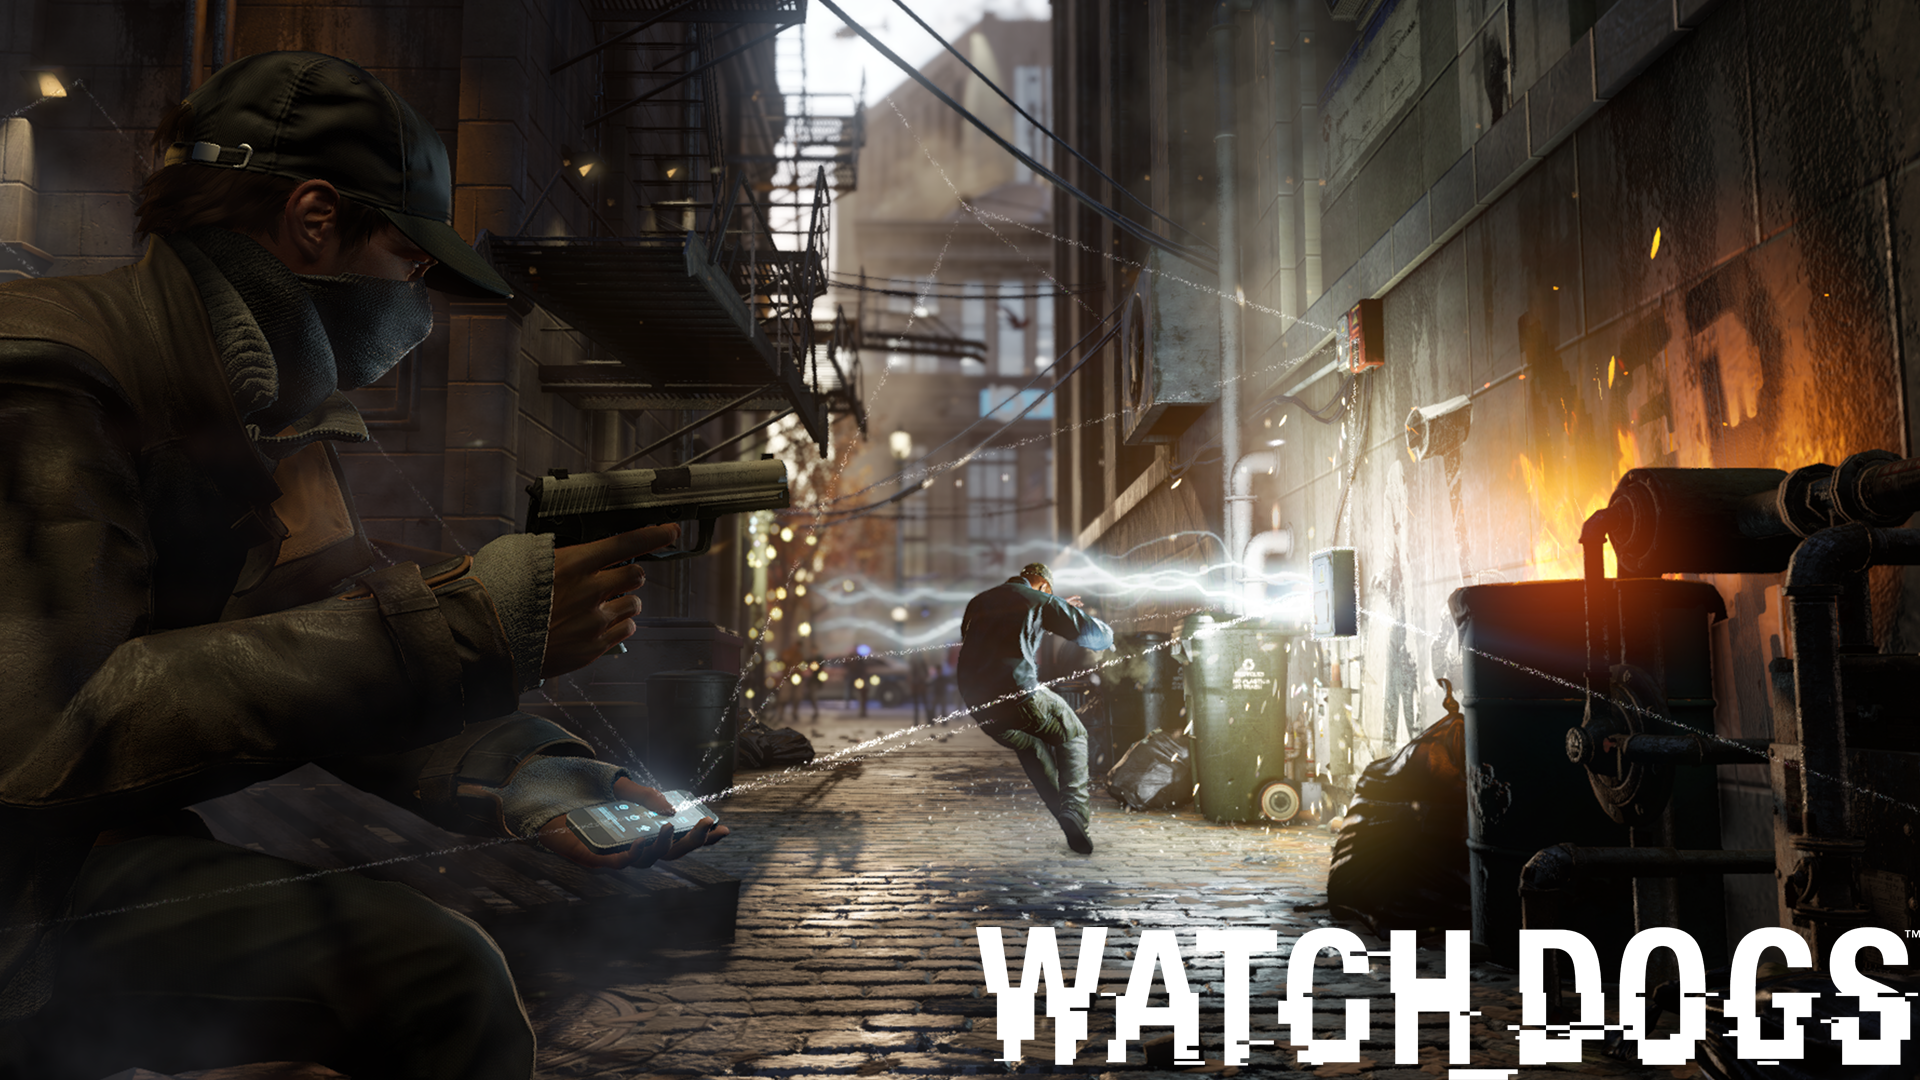 Watch Dogs Перевороты - Изображение 1